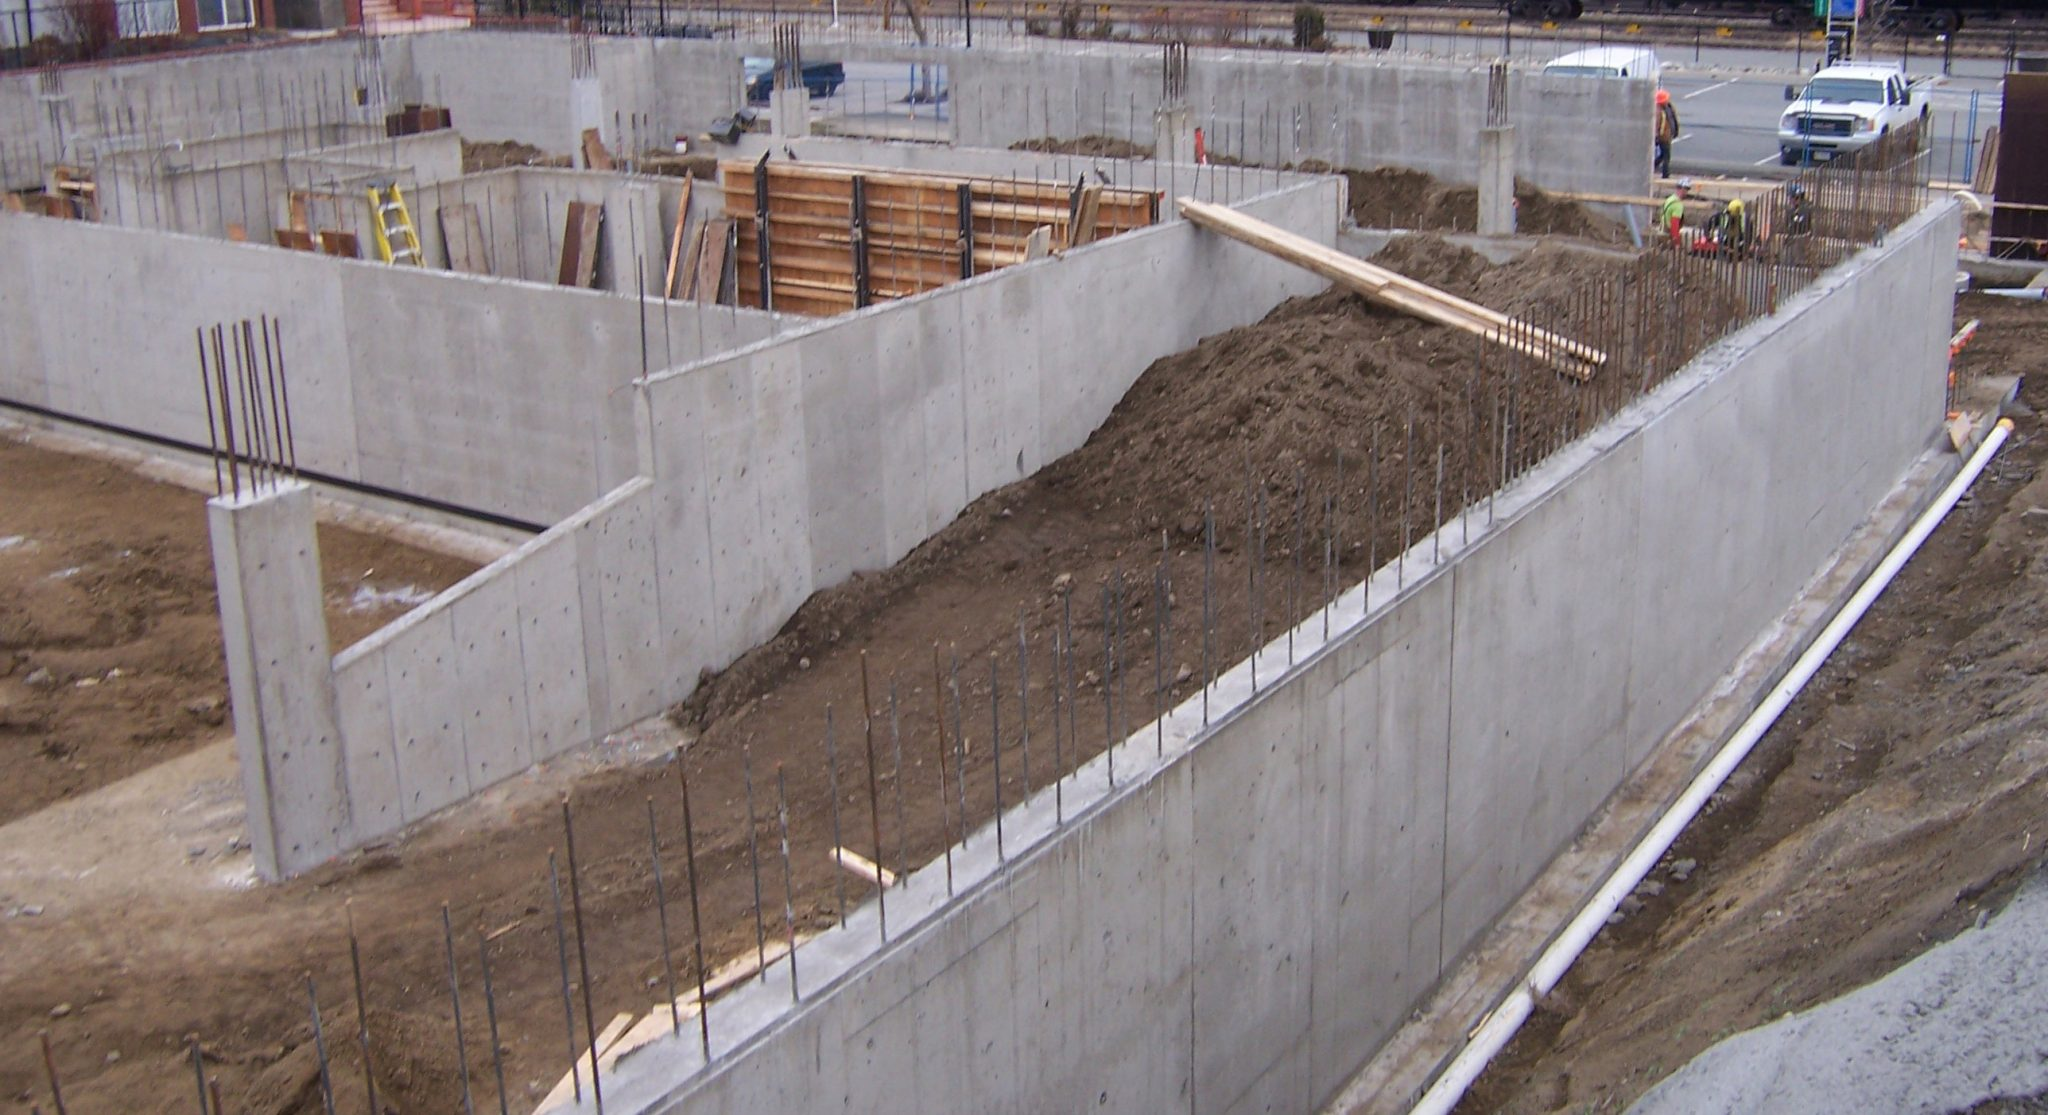 concrete walls with dirt and rebar